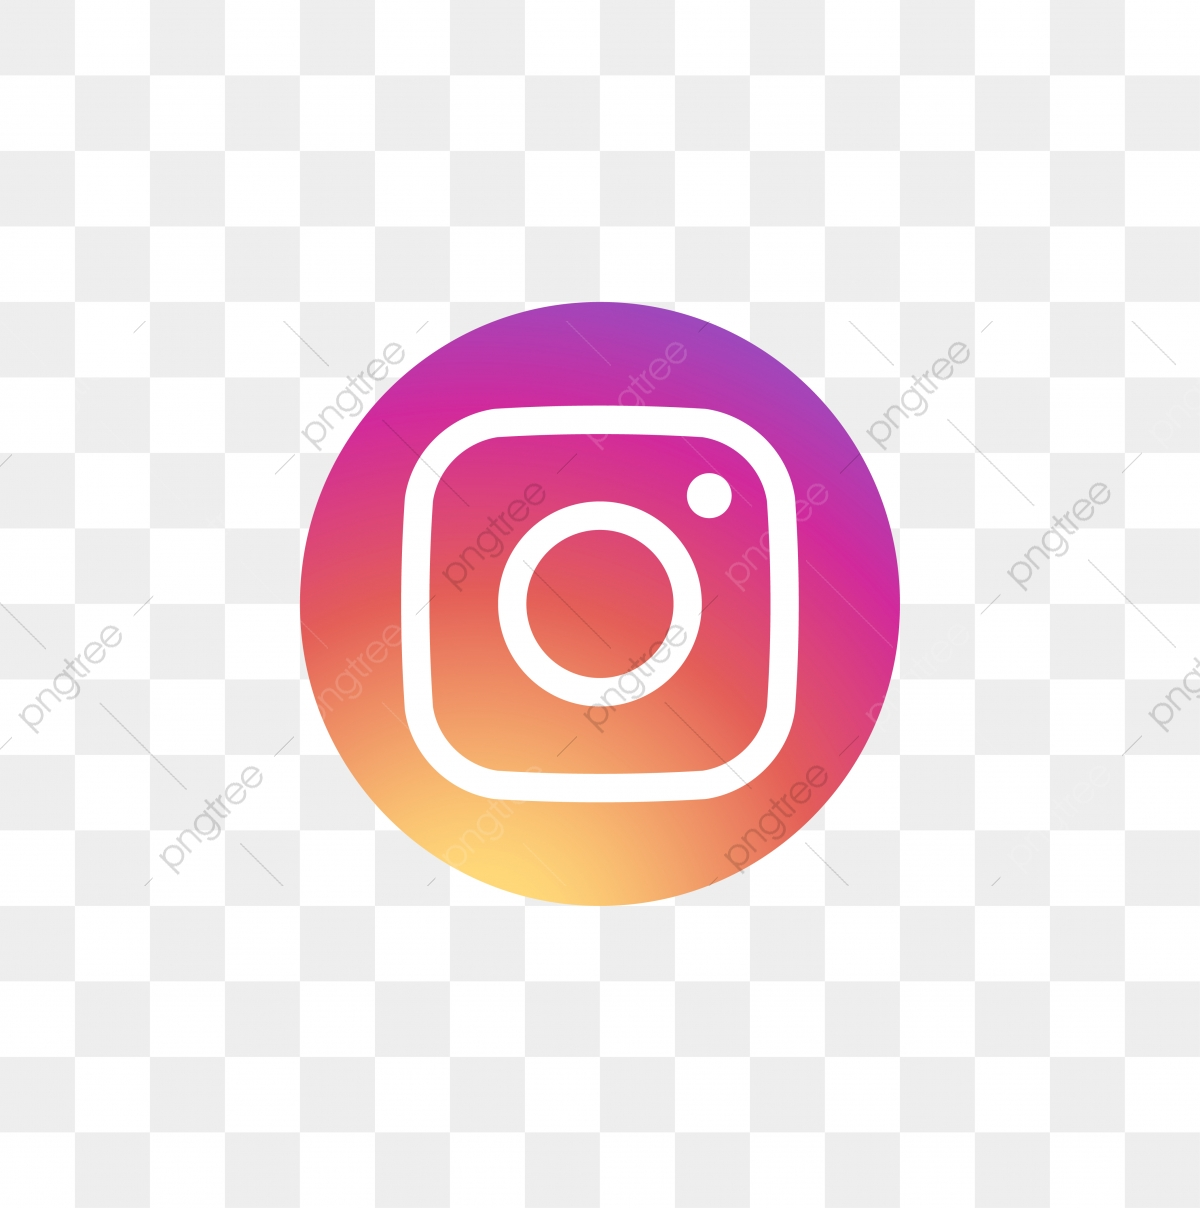 ig logo clipart instagram page